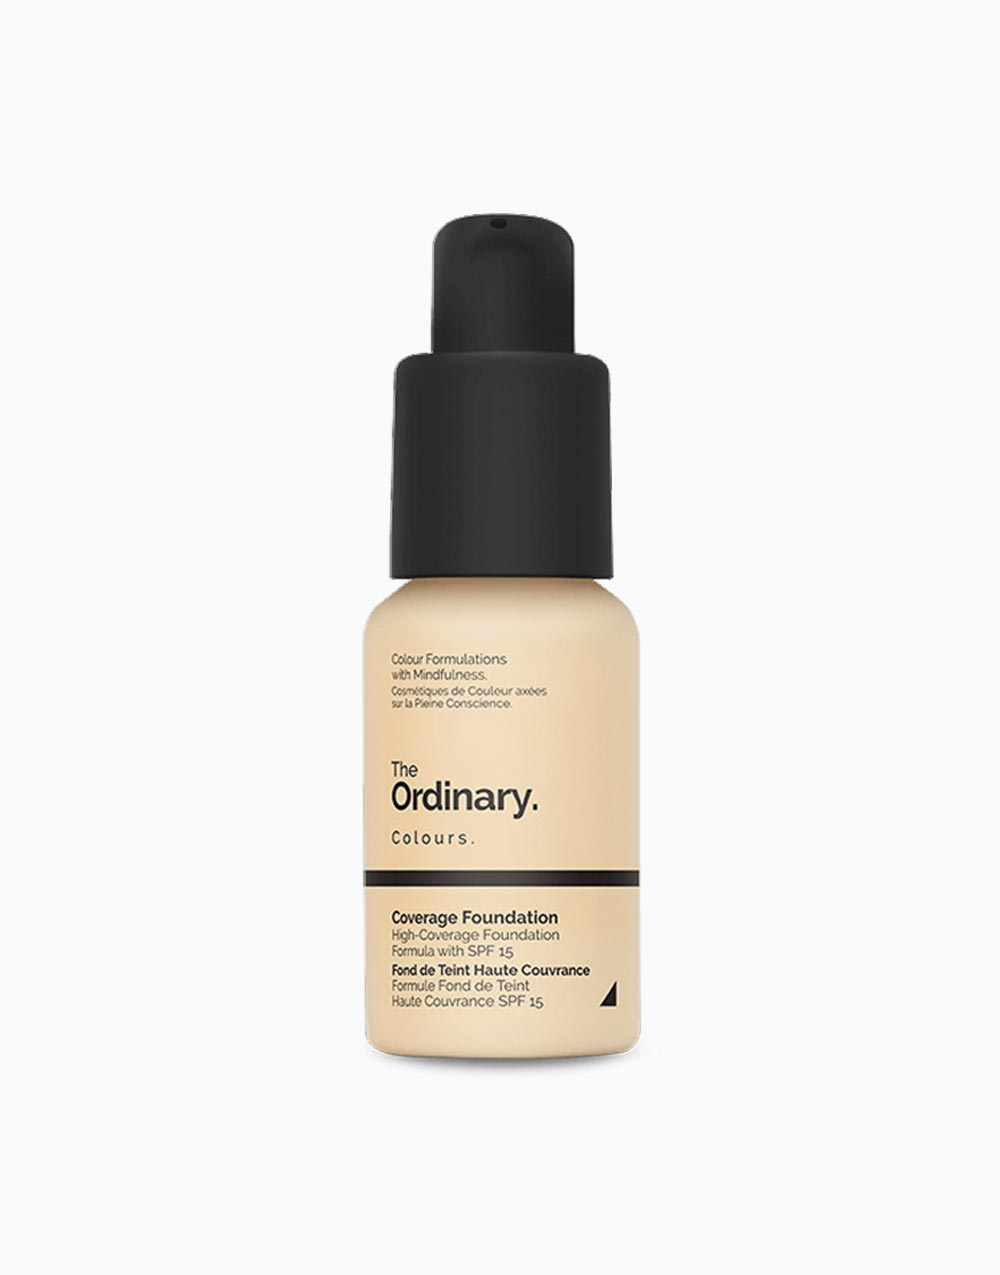 Coverage Foundation by The Ordinary | 1.2N